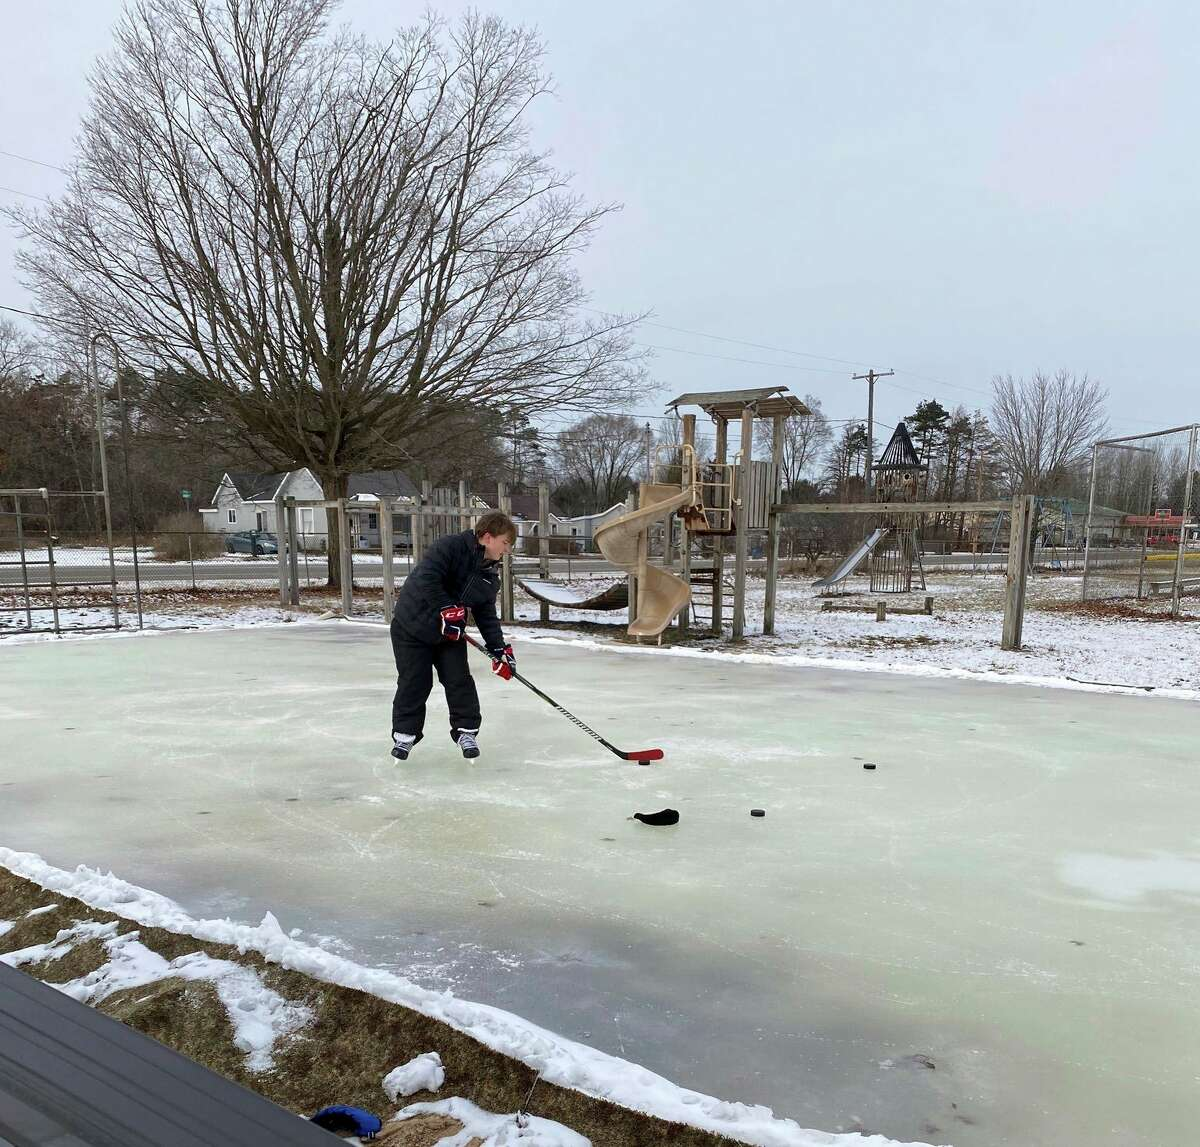 The ice rink is currently open at the Morley Community Center. The rink is an unsupervised recreational area that residents can use at their own risk. (Courtesy photo)